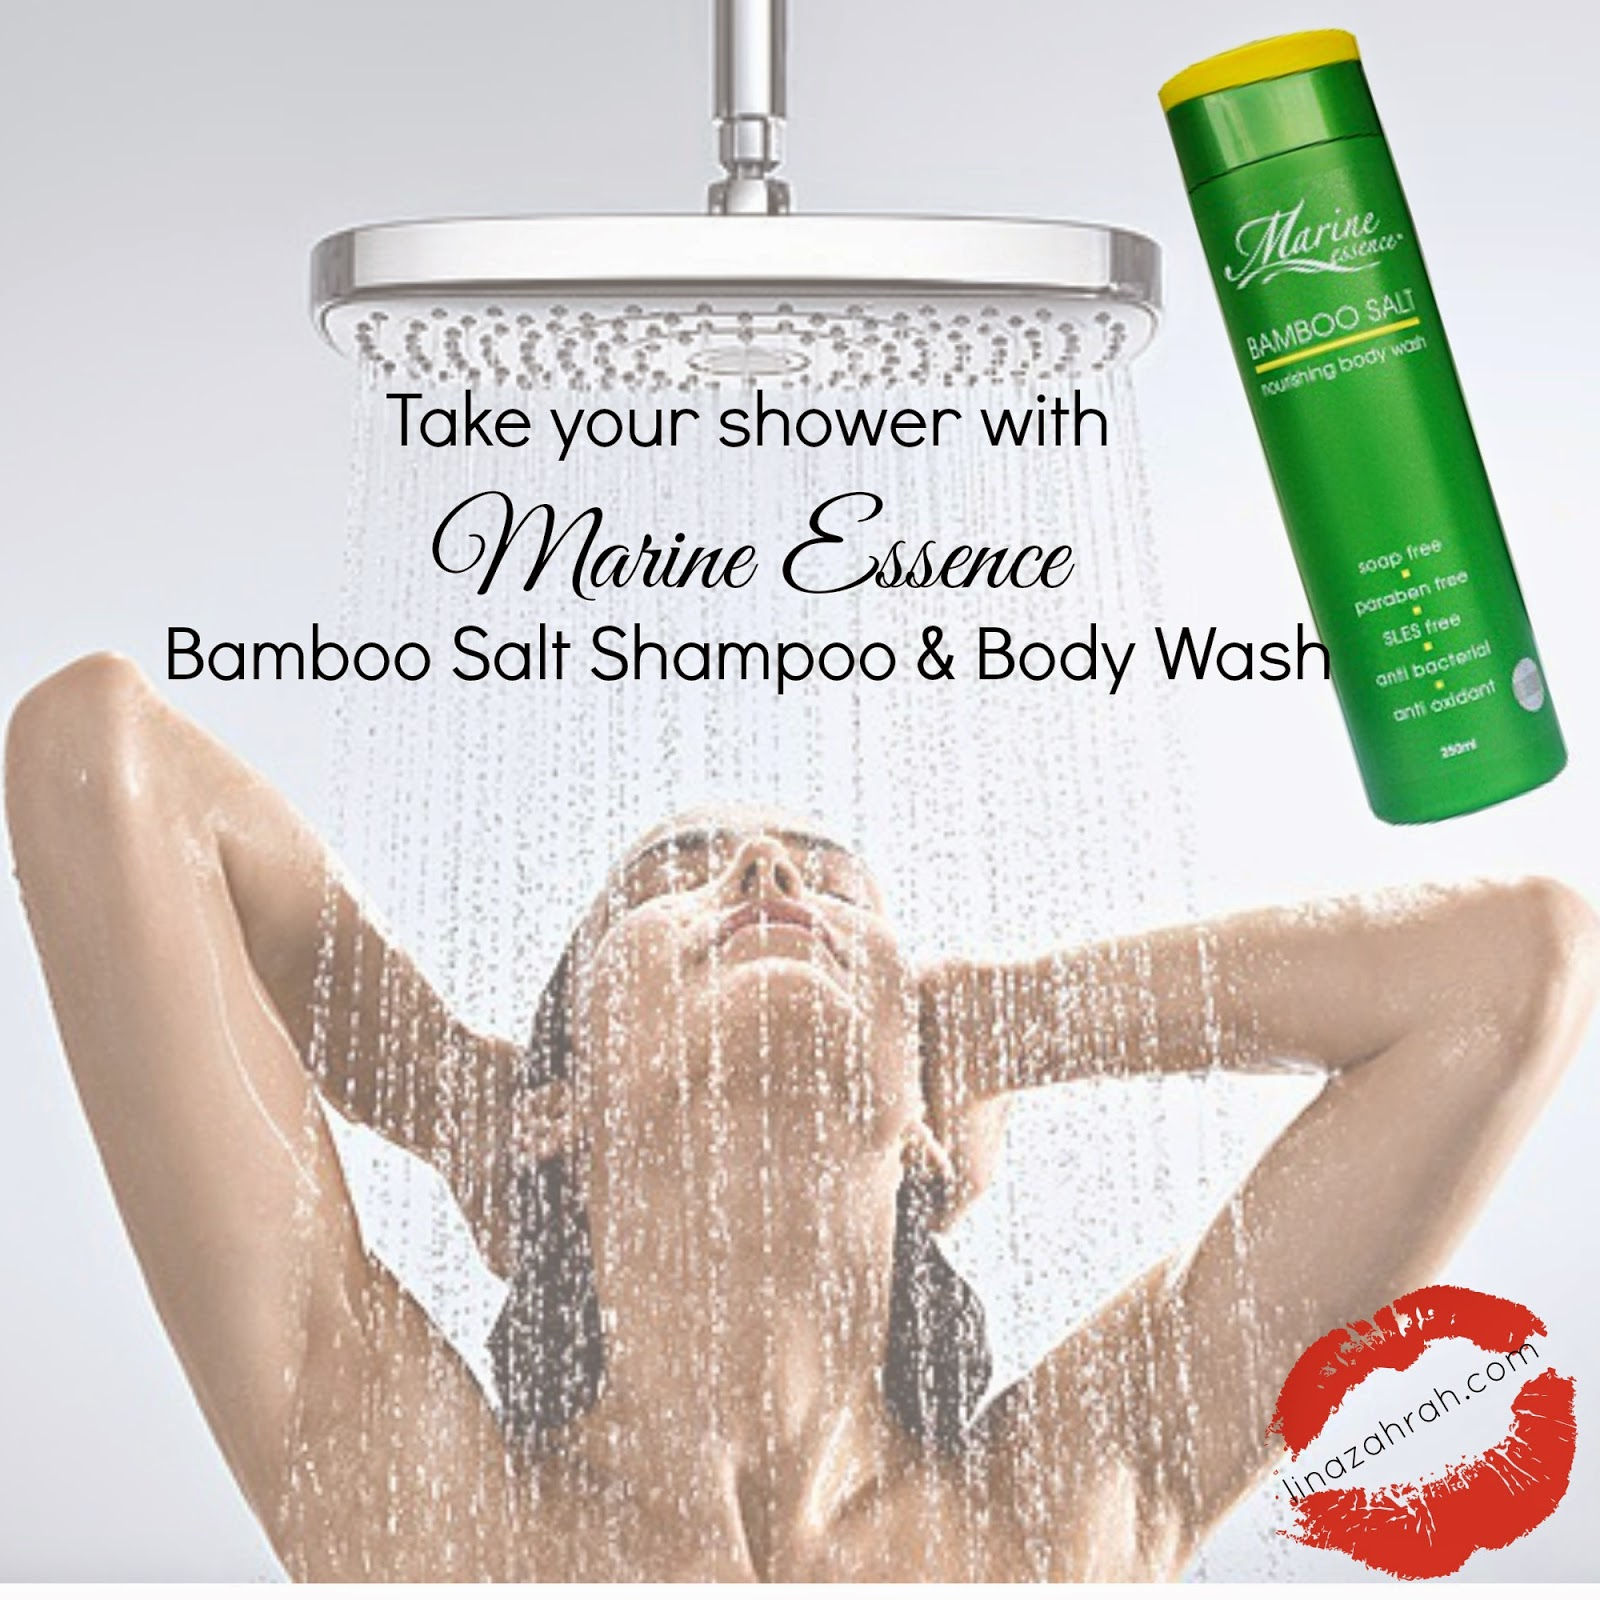 Shampoo and body wash